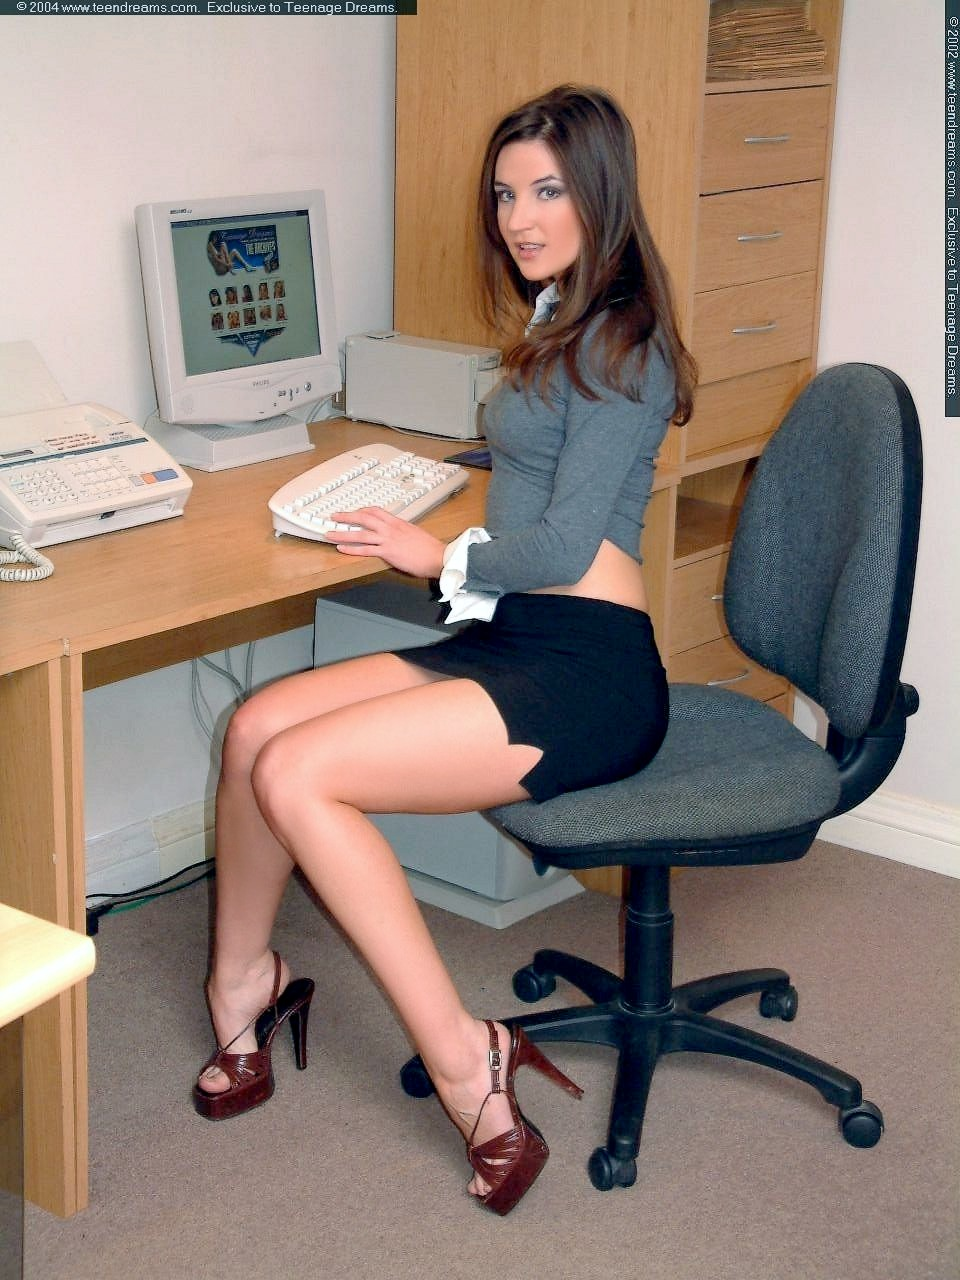 Hot office pic Temperature And You Will Because Youre Man And Men Are Stupid Governed By Instinct Best Just To Make Minimal Contact With This Girl Or Pretend Youre Very Busy Office Example Blog Office Example Blog Check